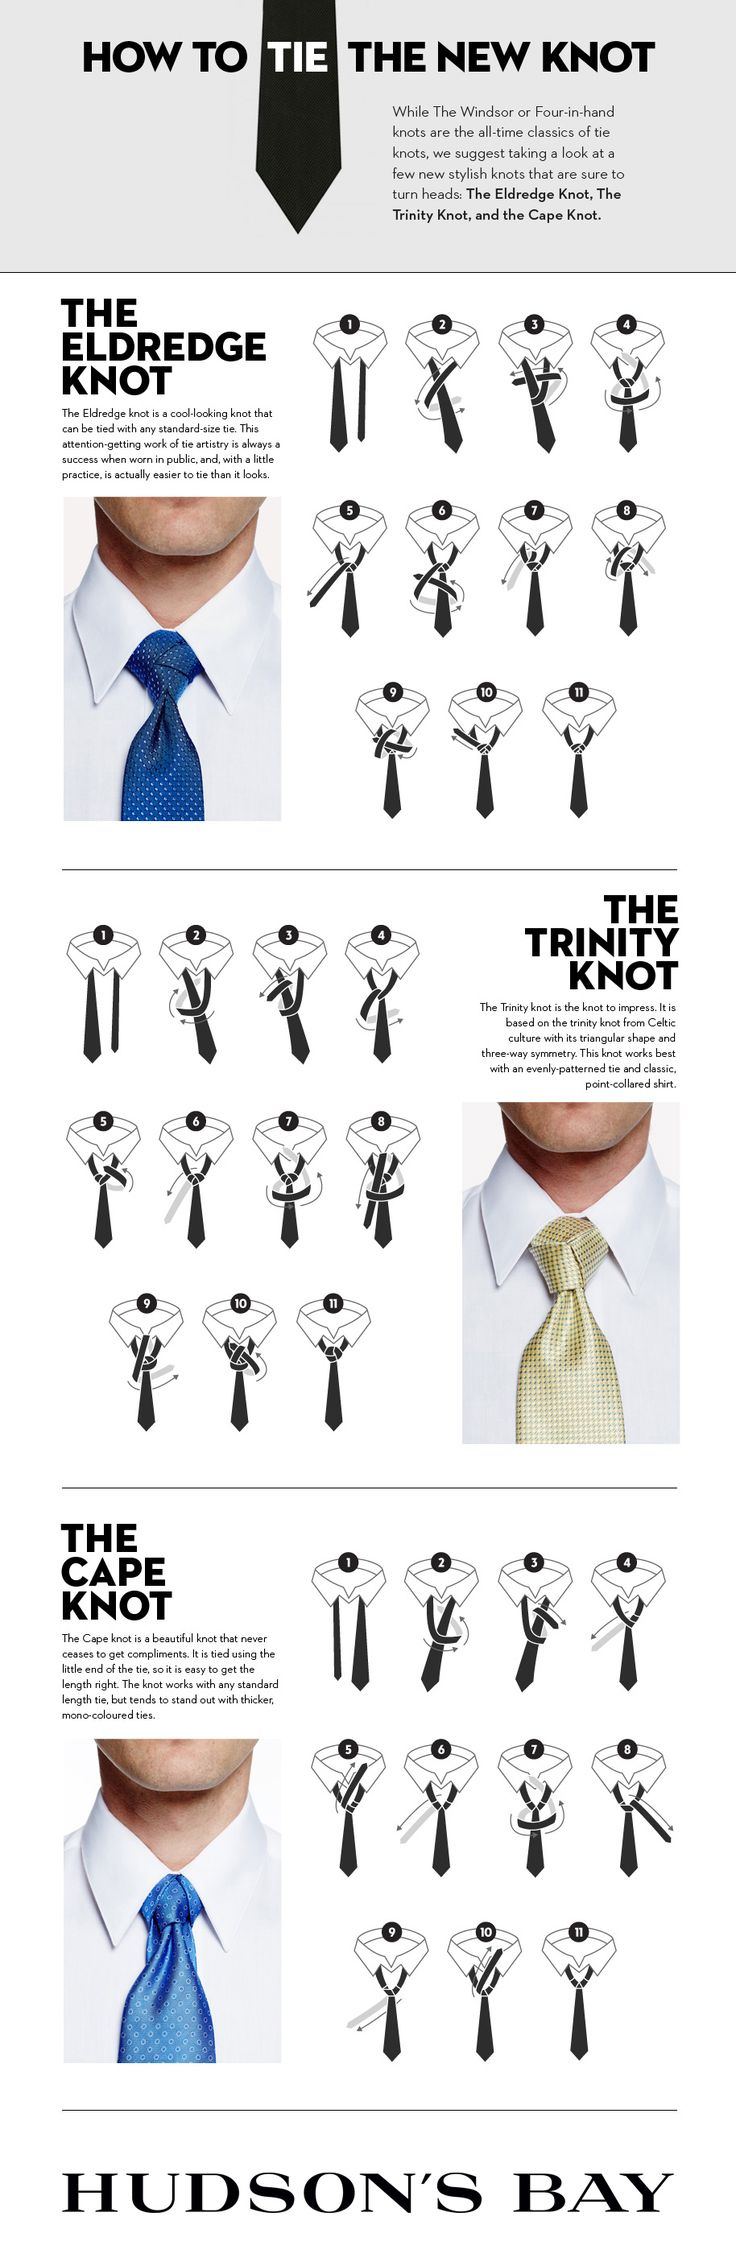 While the Windsor or Four-in-hand knots are the all-time classics of tie knots, The Hudson's Bay suggest taking a look at a few new stylish knots that